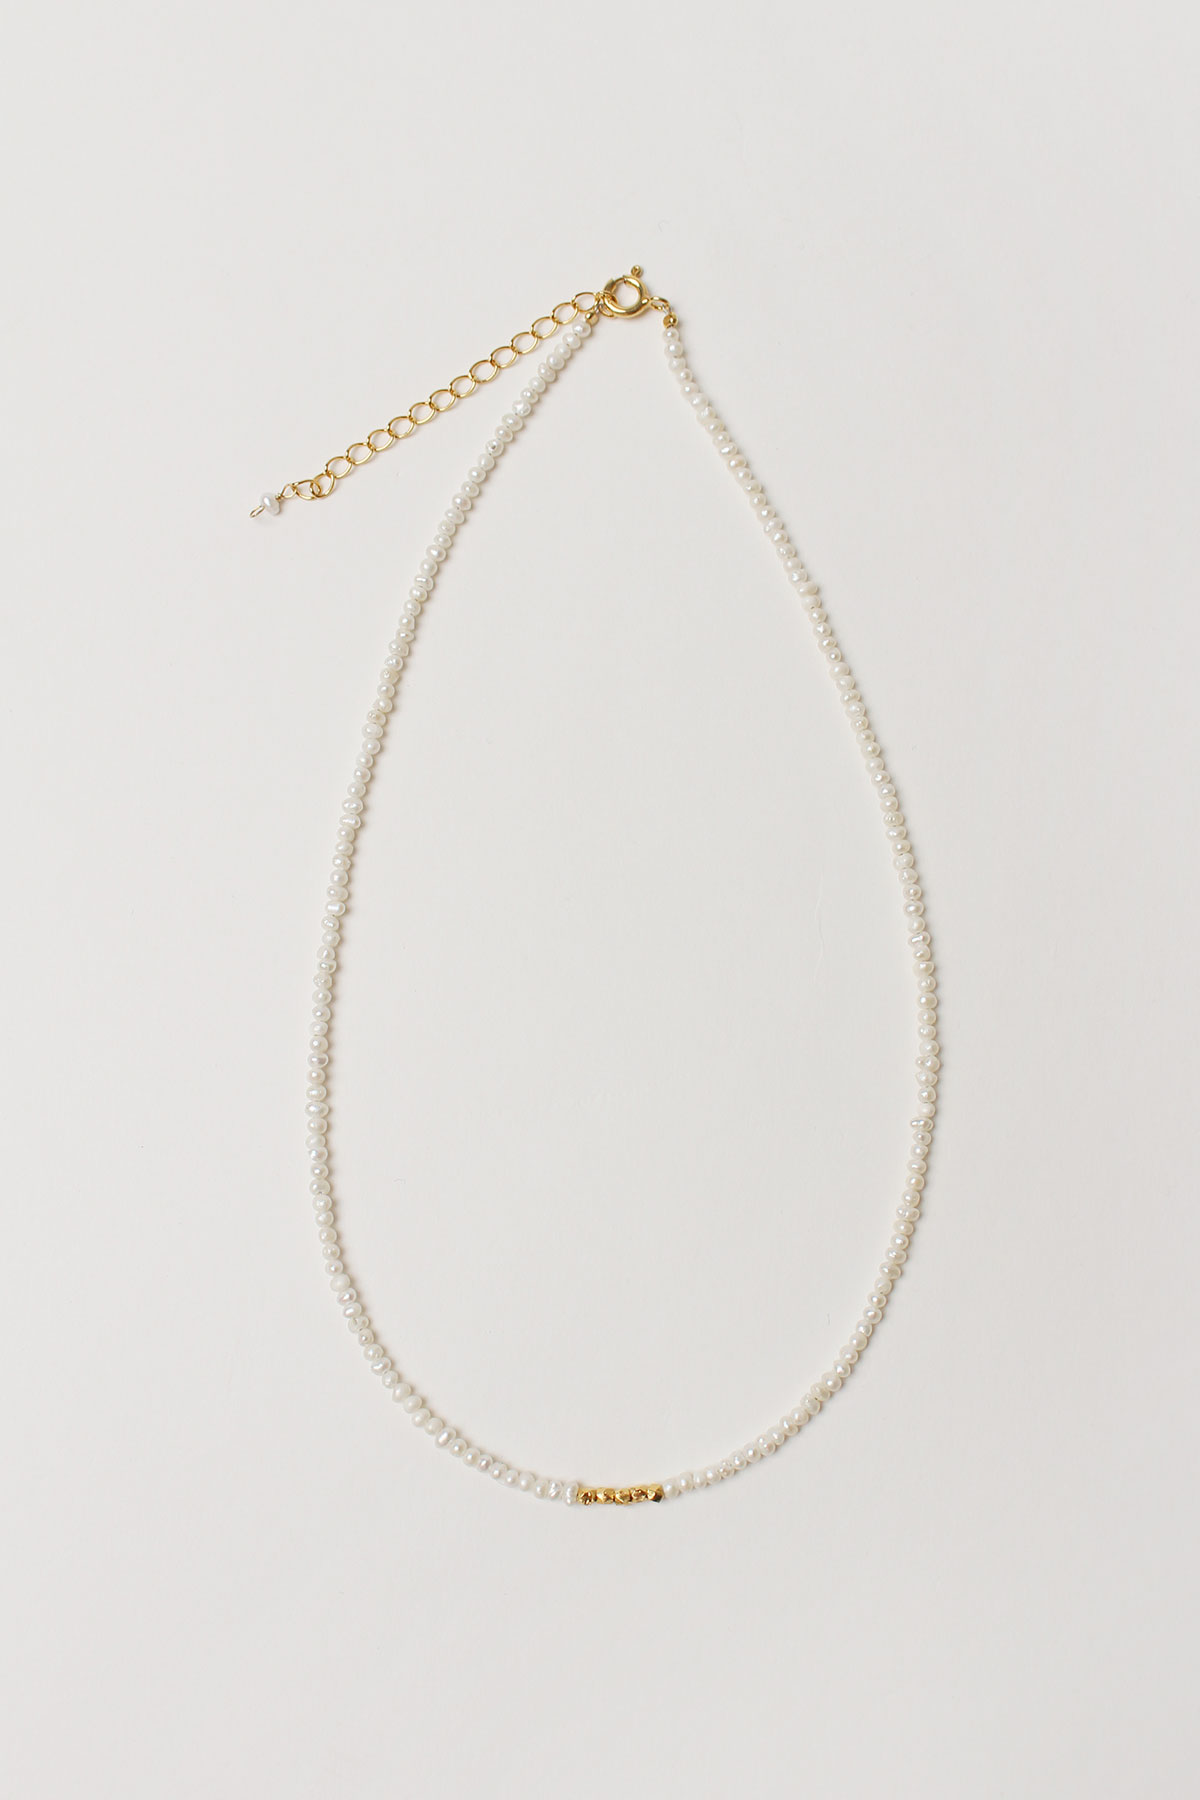 AN NECKLACE (925 SILVER)